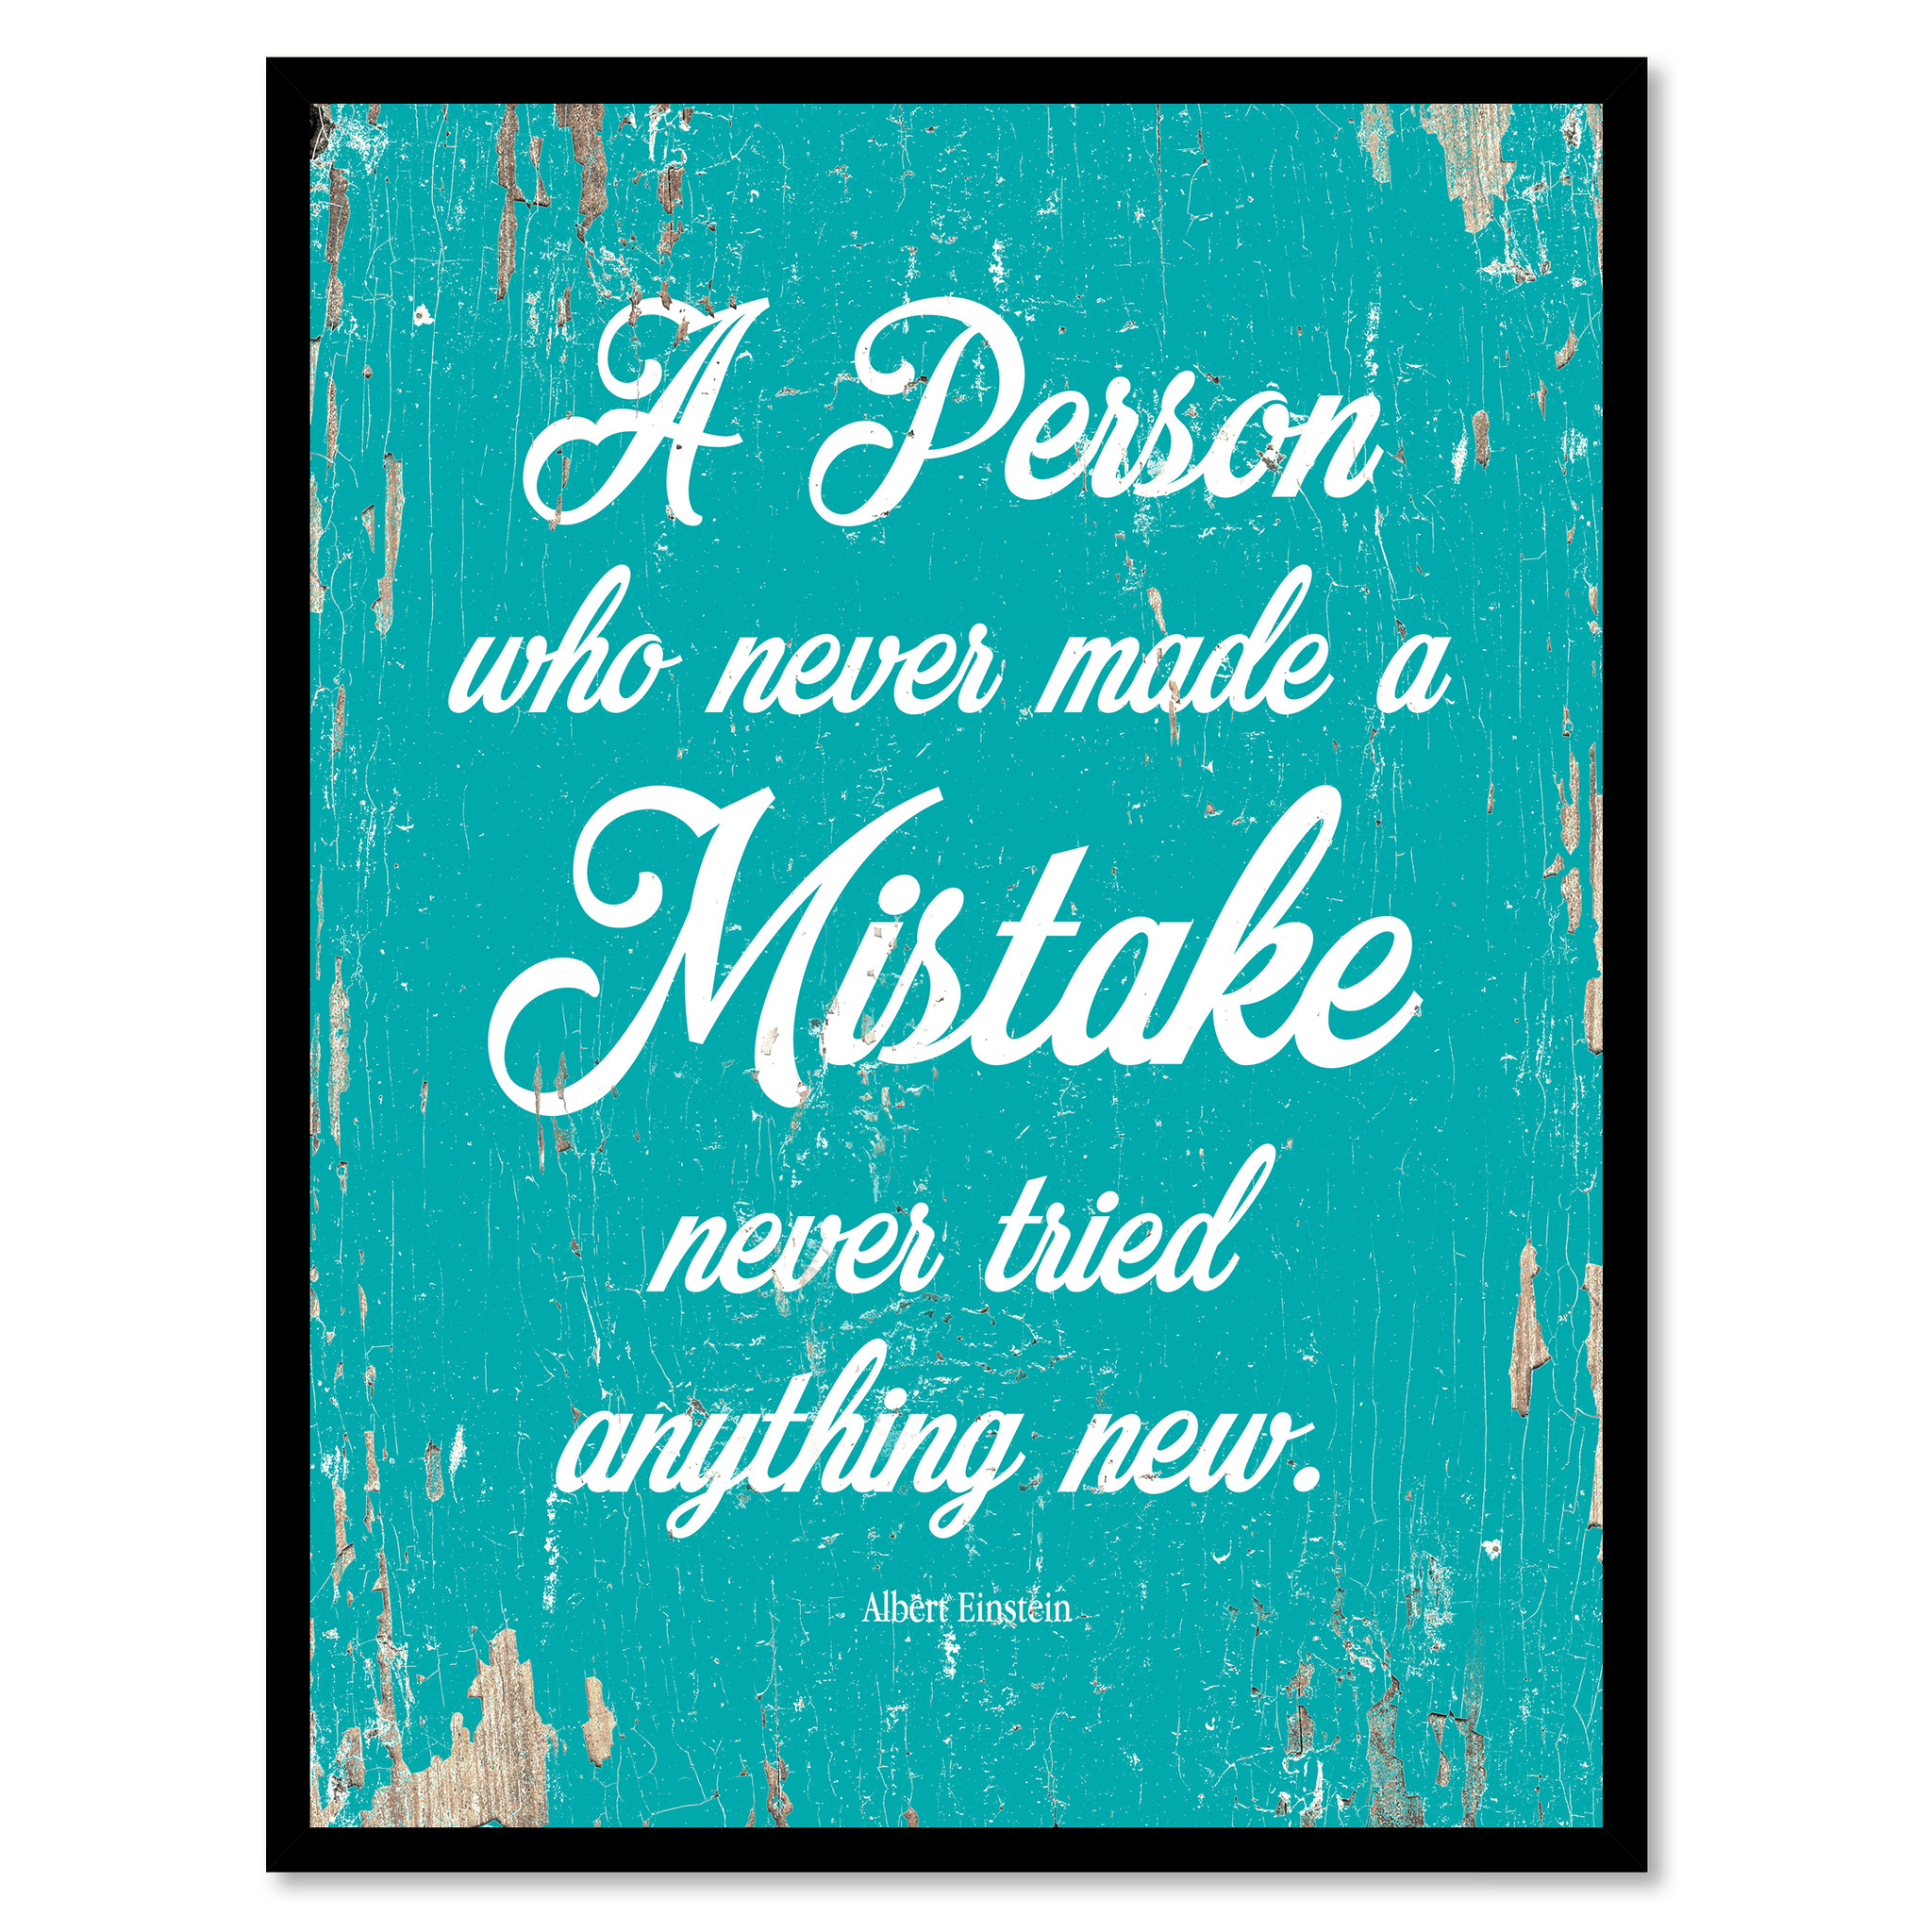 "A Person Who Never Made A Mistake Albert Einstein Quote Saying Canvas Print with Picture Frame Home Decor Wall Art Gifts 111663 - 7""x9\"""